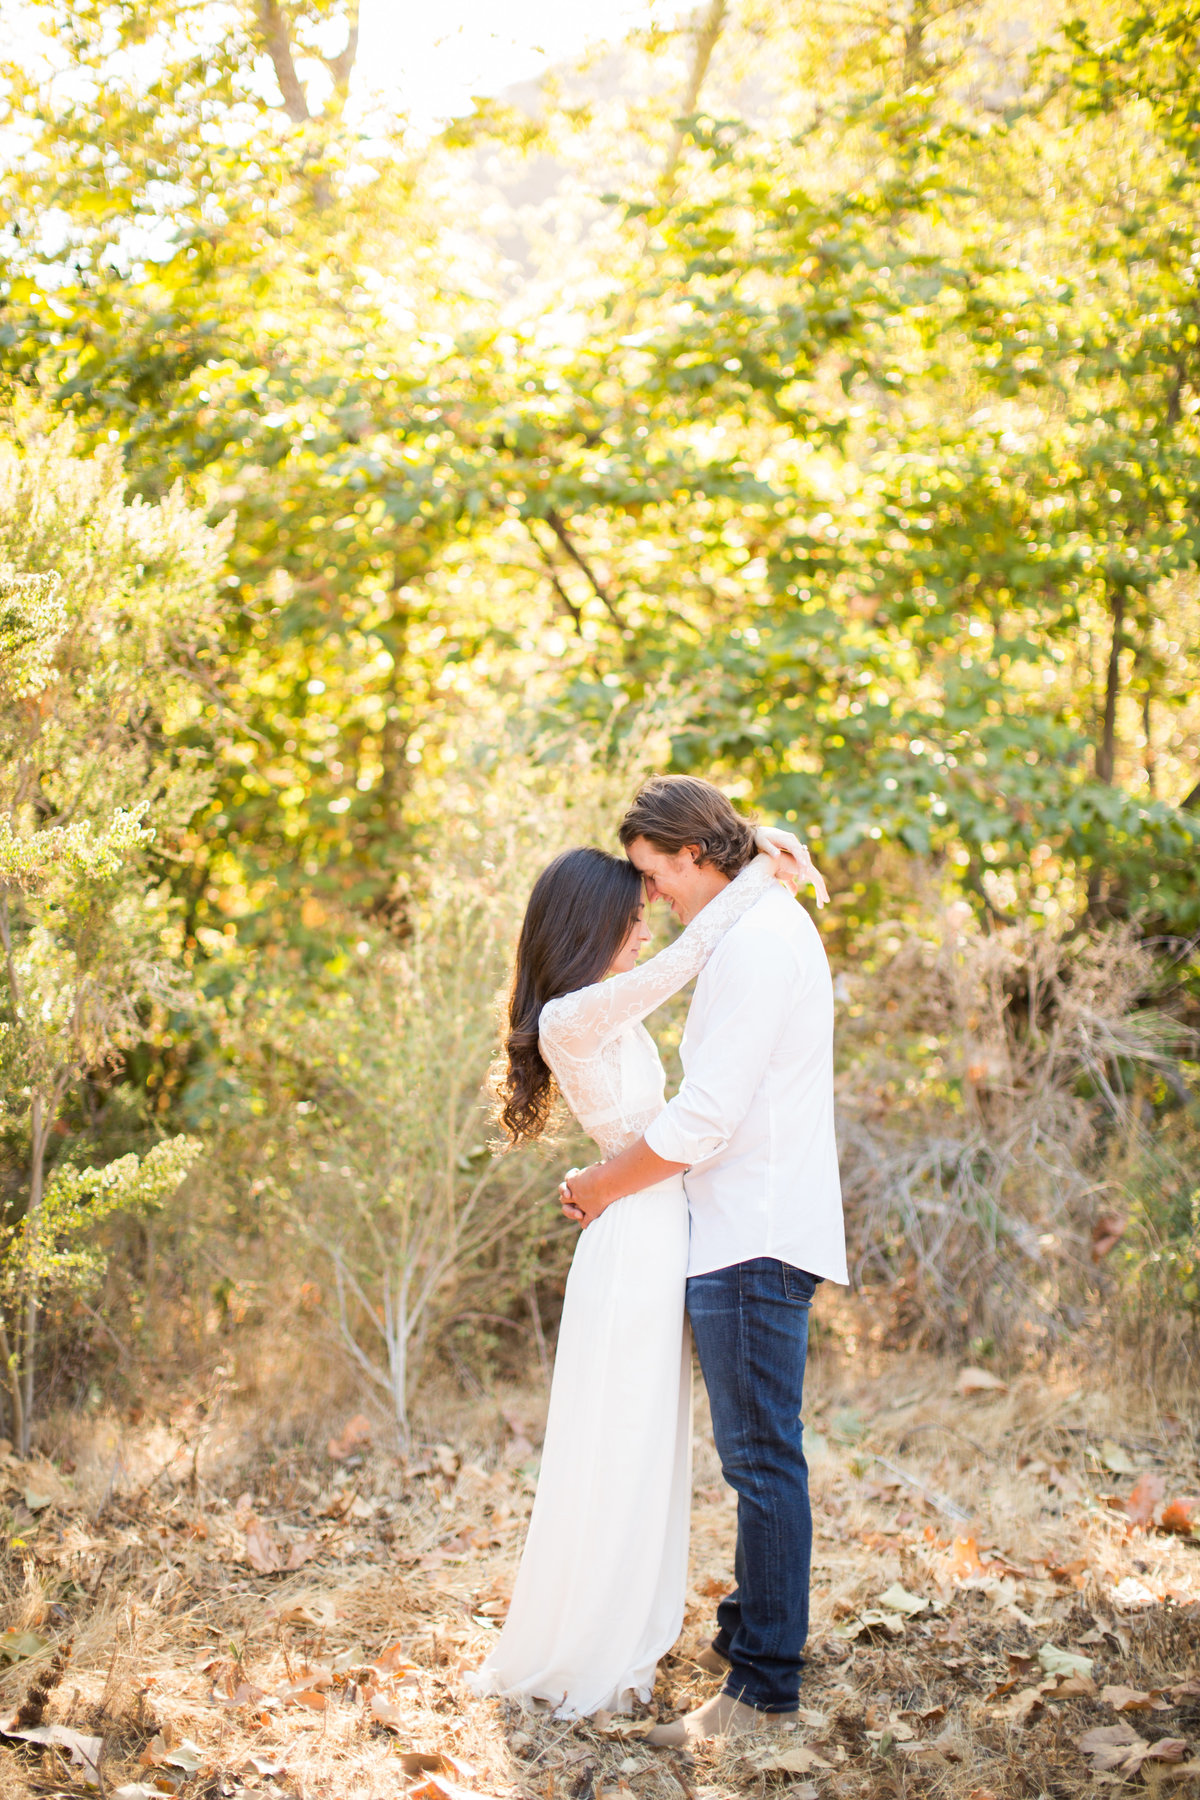 sabina_carson_malibu_engagement_session_photos-151